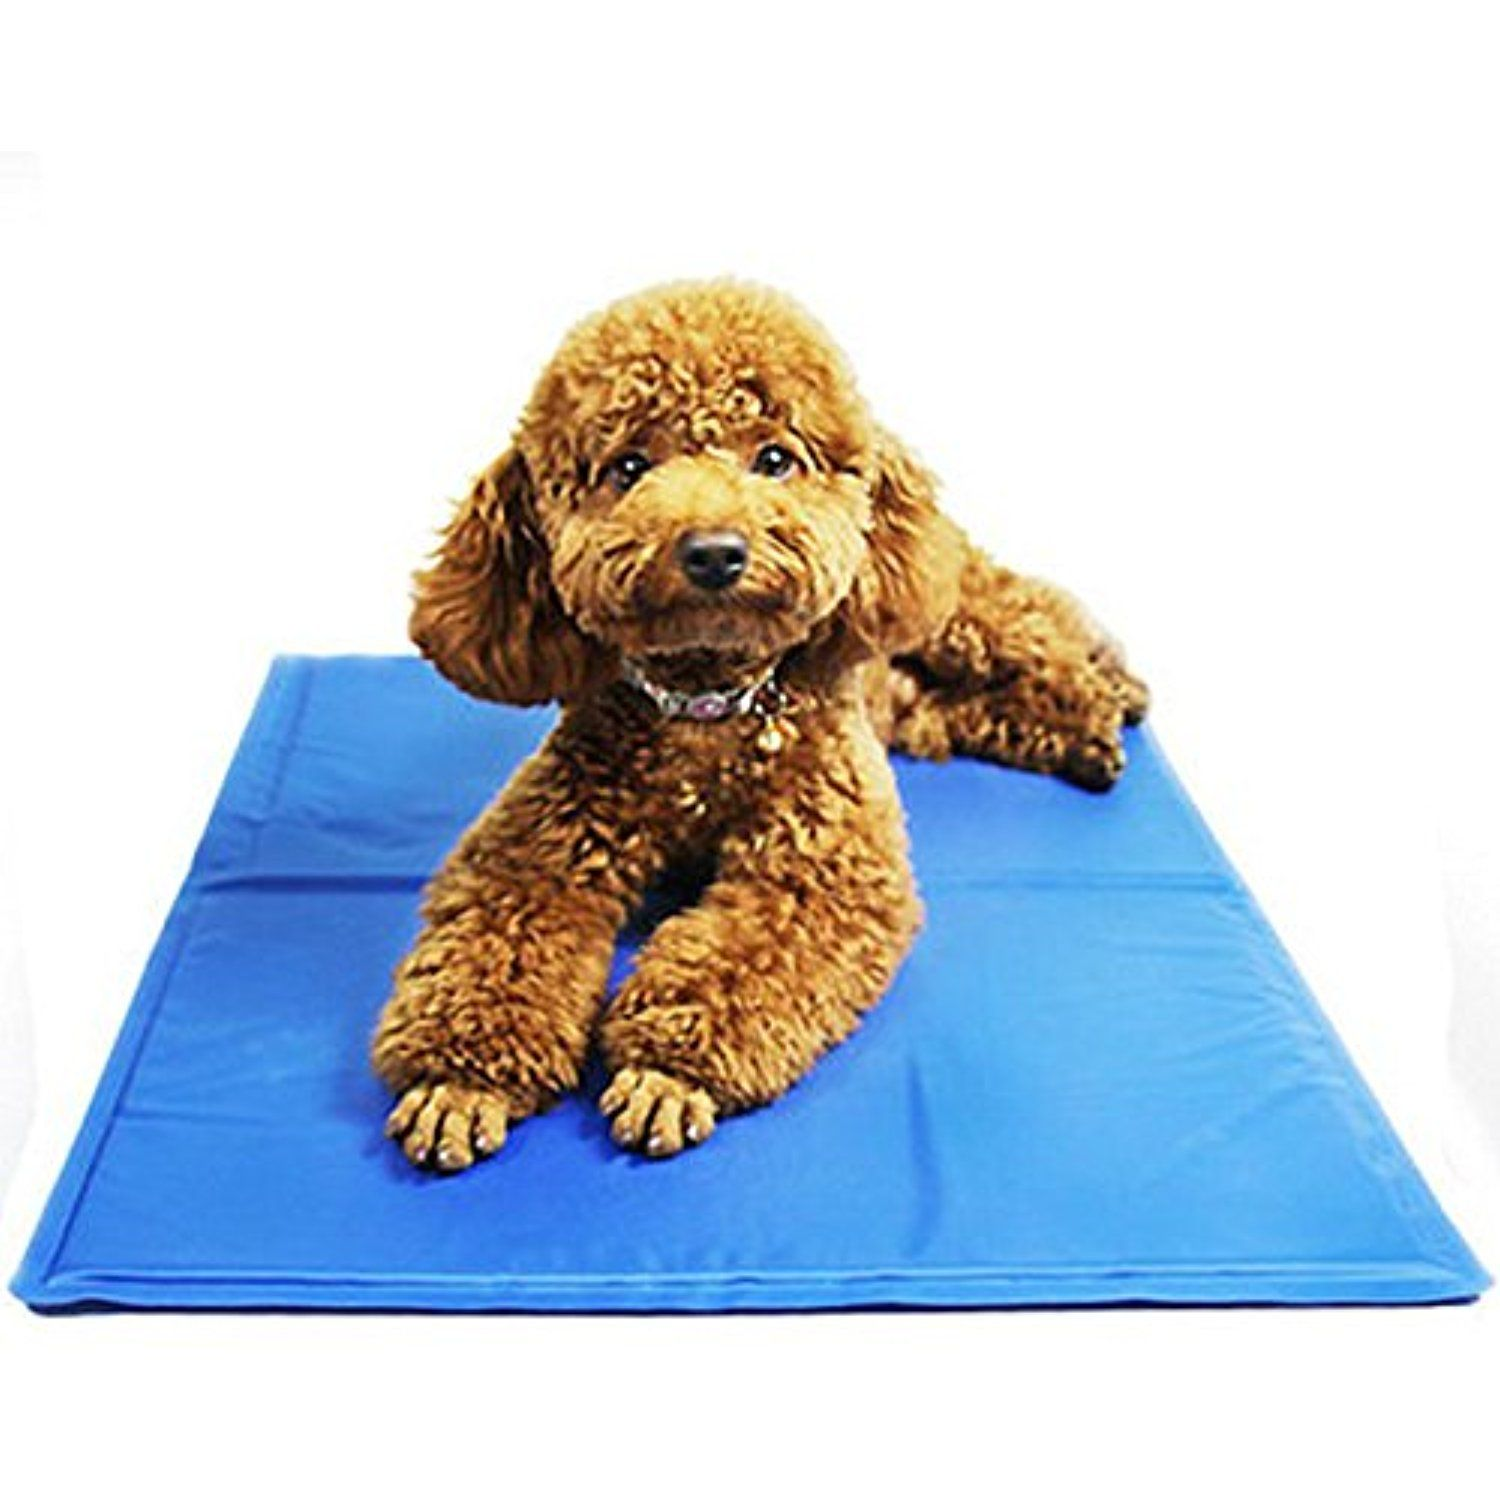 Pet Self Cooling Mat Summer Soft Rapid Cooling Ice Pad Pet Bed